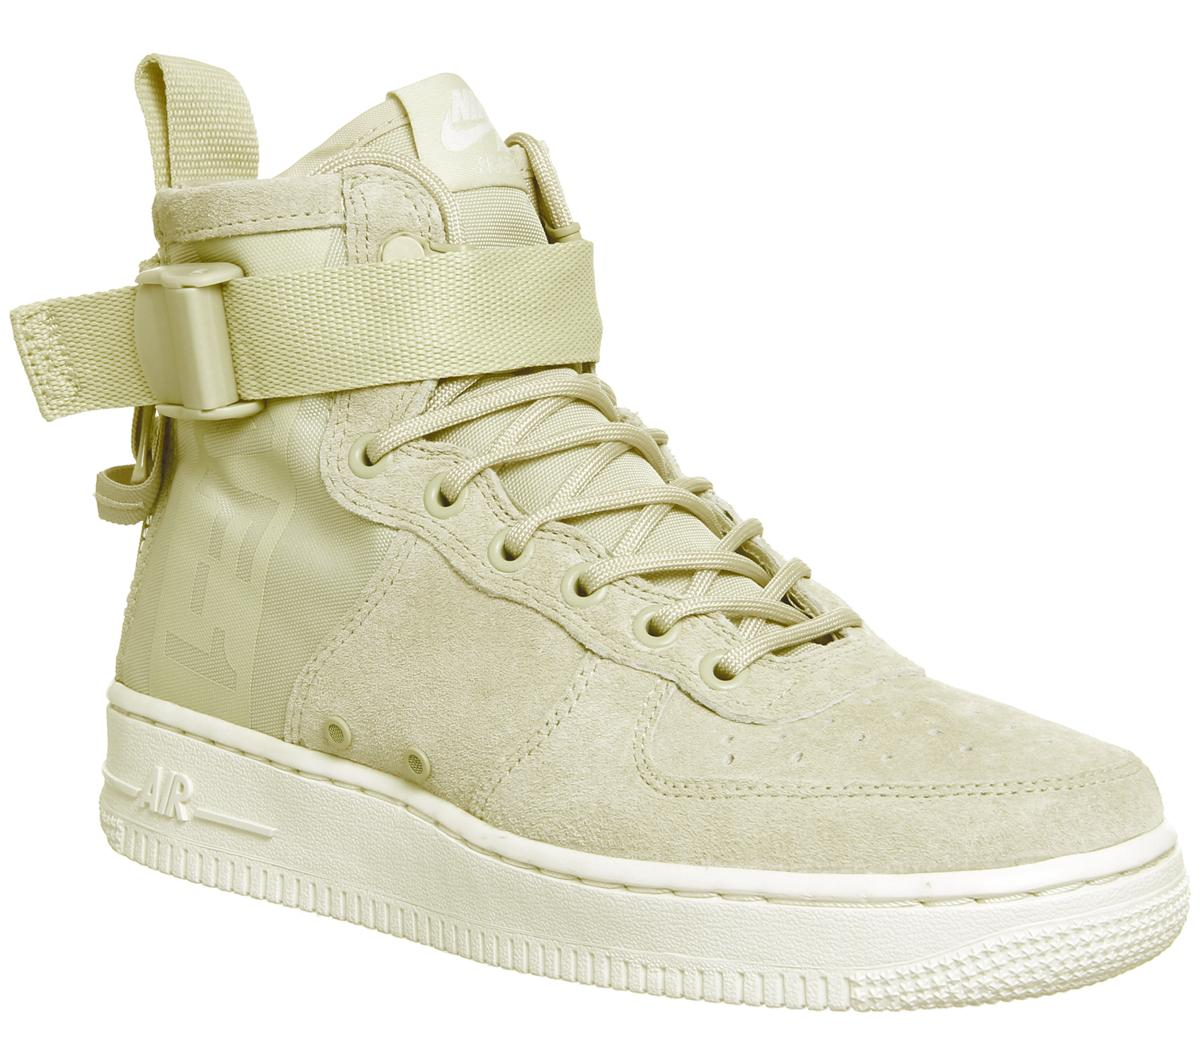 Sf Af1 Mid 17 Trainers